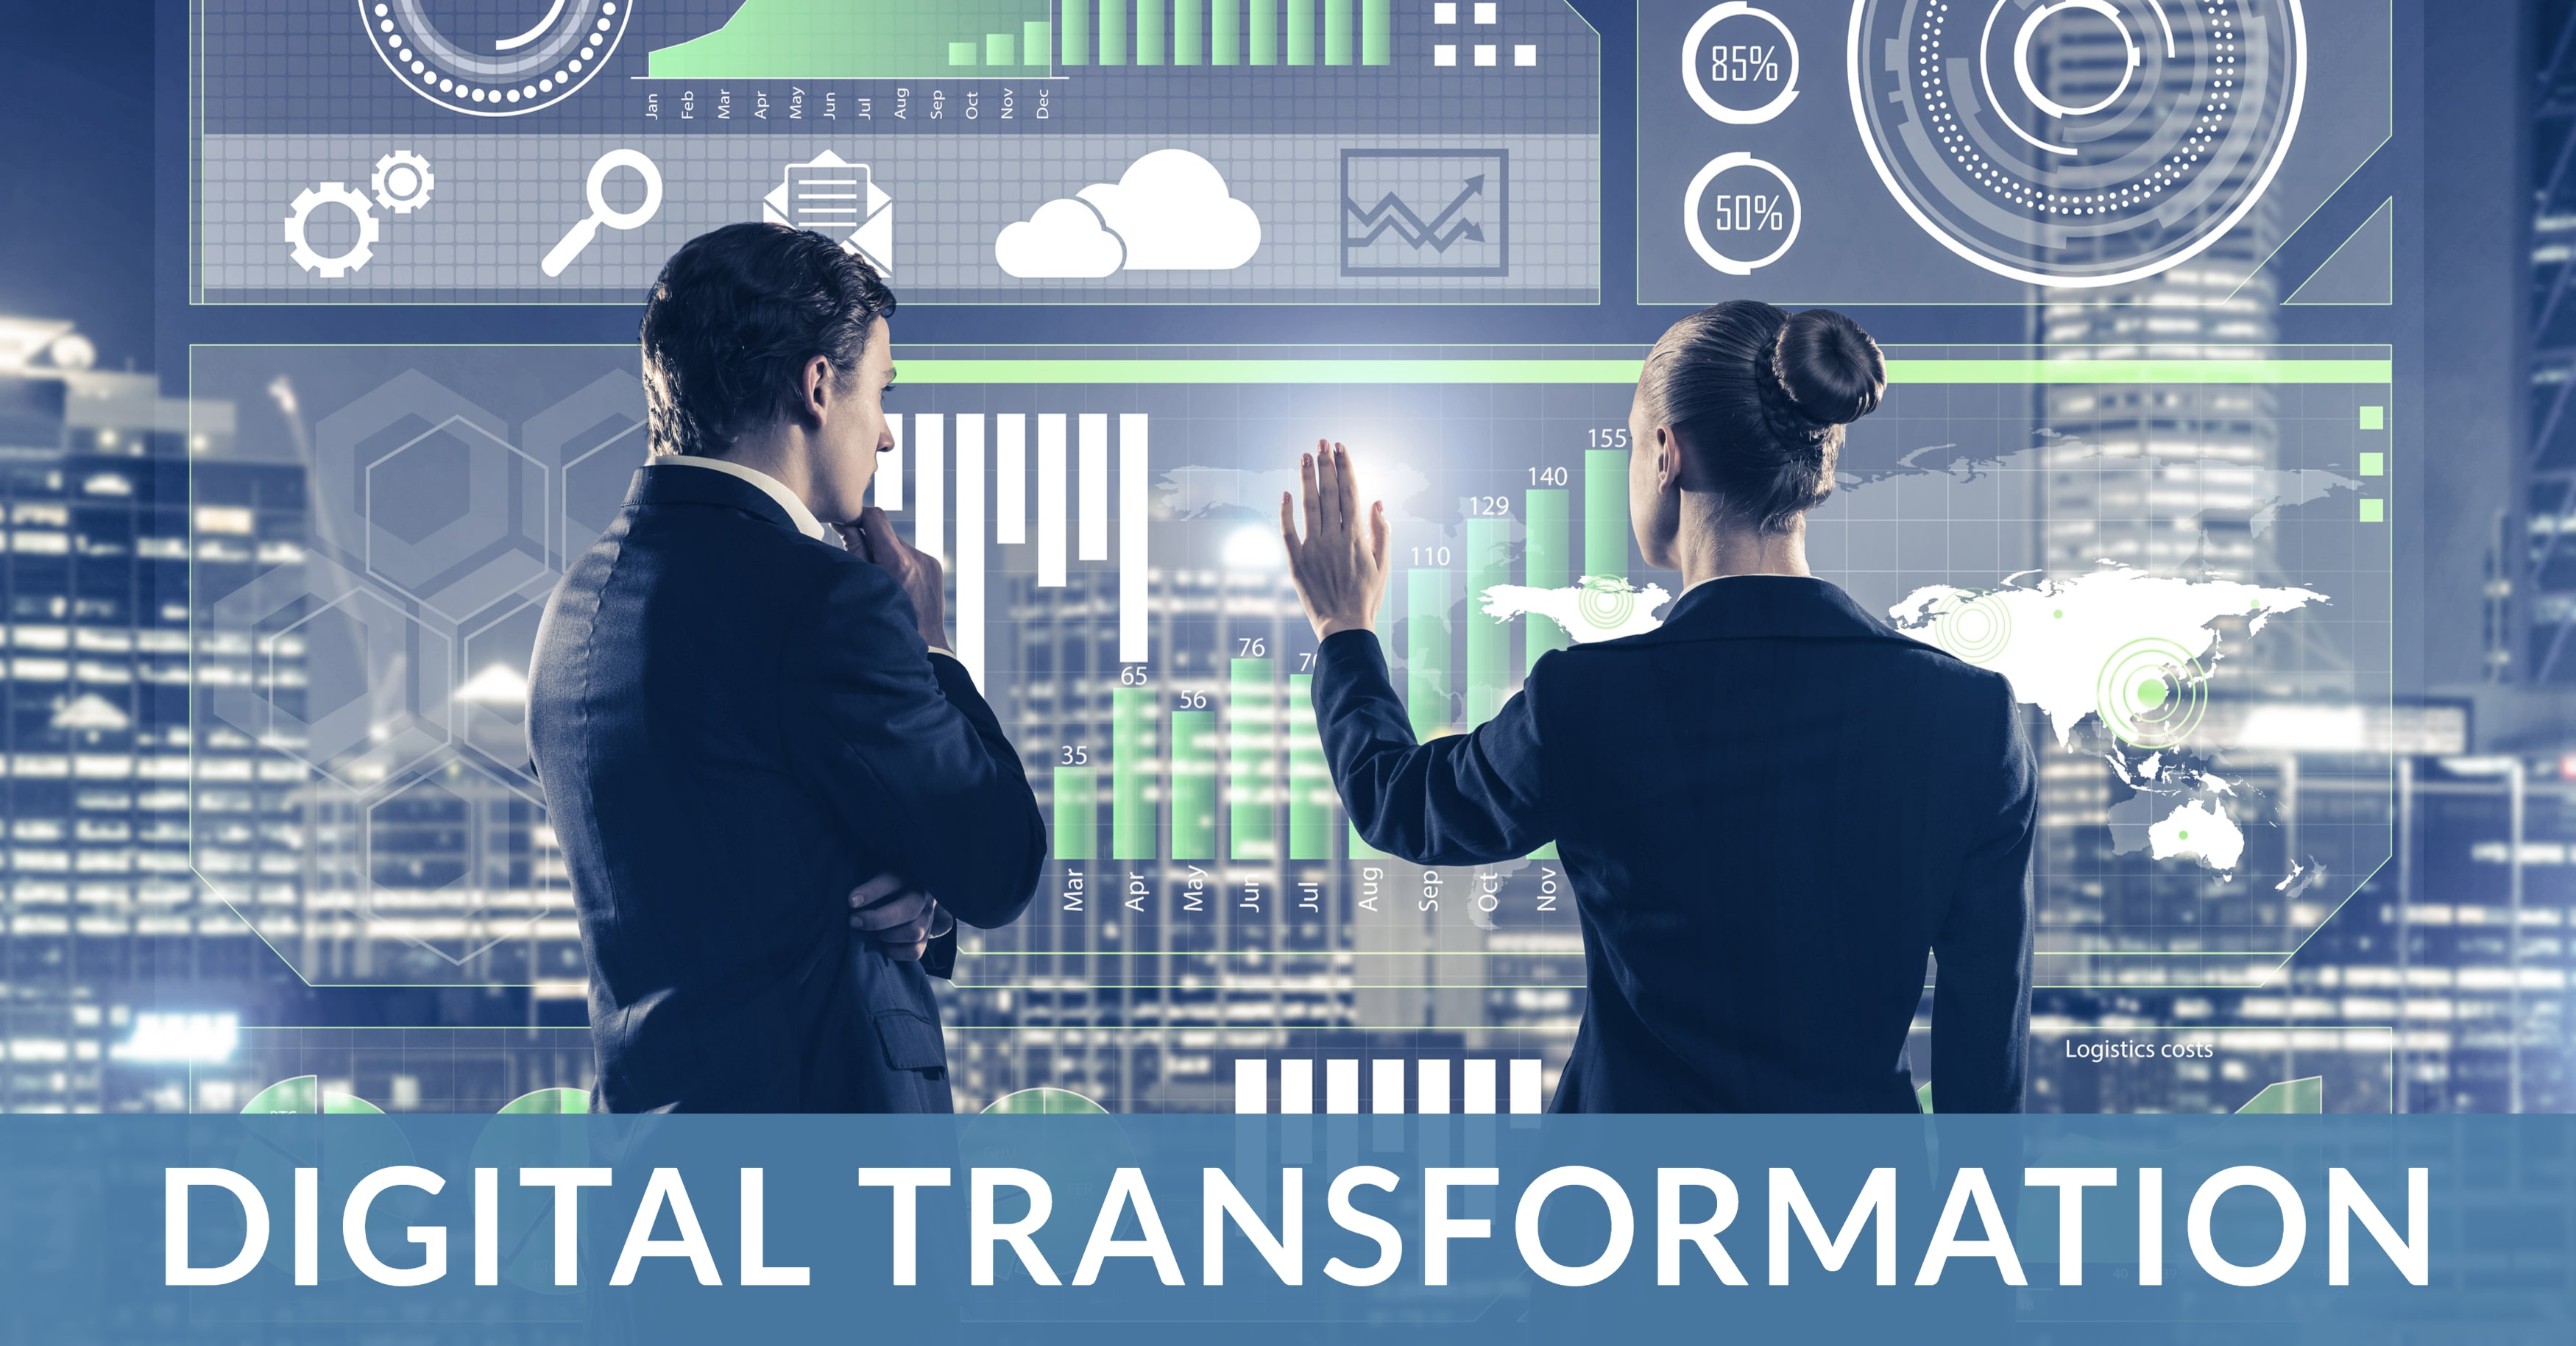 How to Avoid Digital Transformation Failure